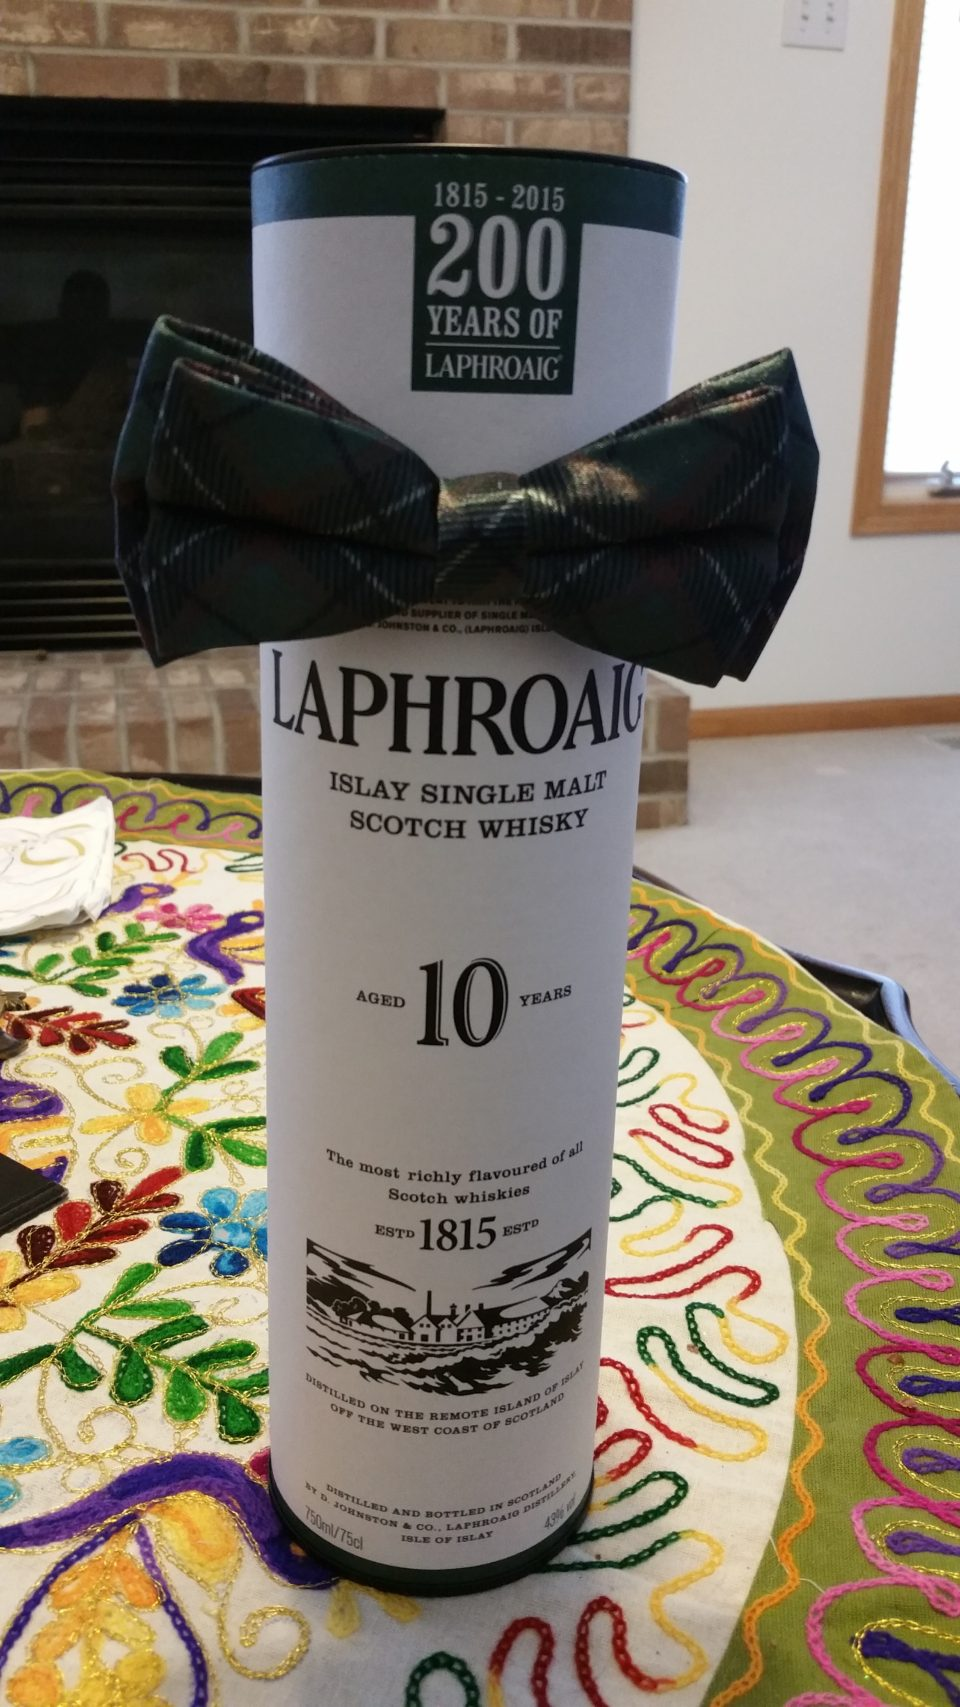 Laphroaig Scotch - Very peaty and overrated